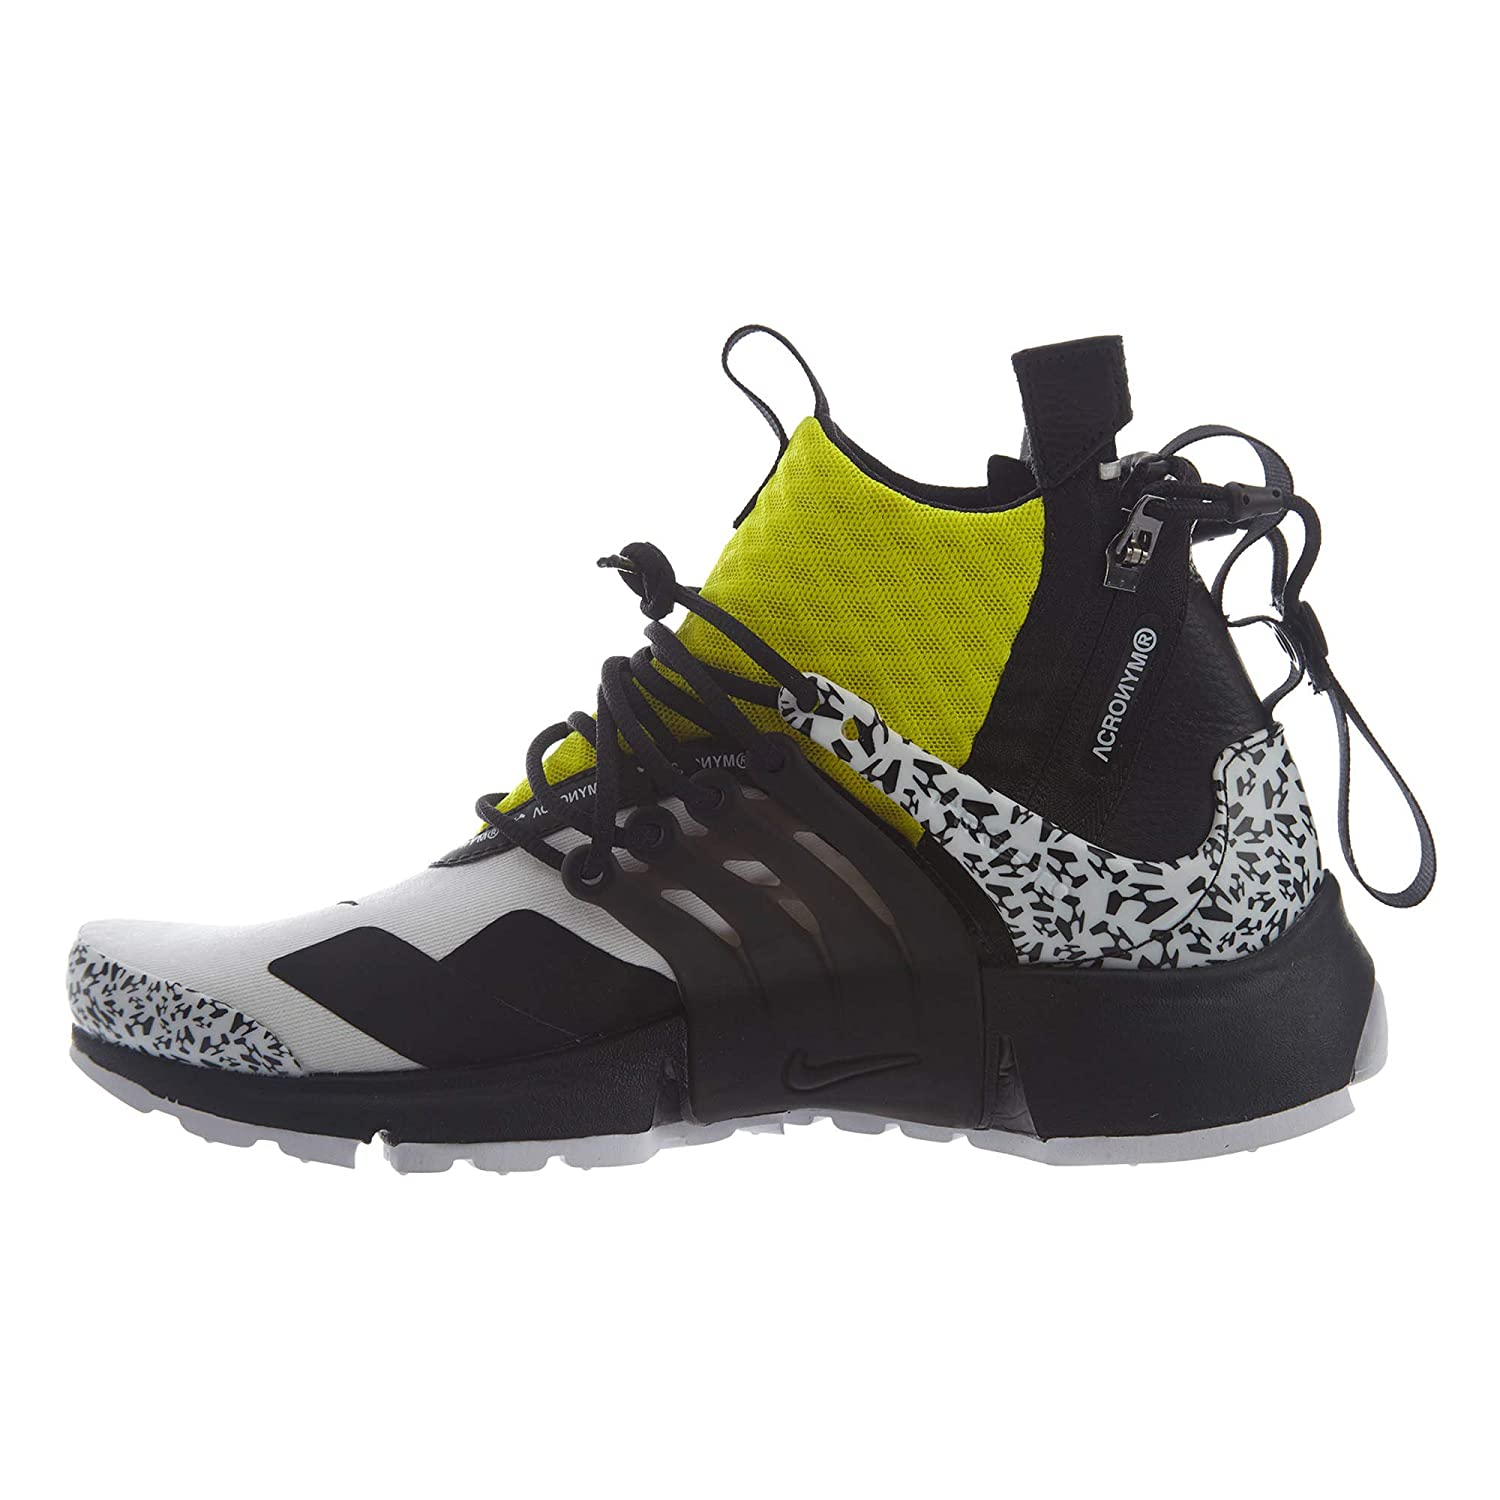 355c2e942e8f1 Nike Air Presto Mid/Acronym Mens Hi Top Trainers Ah7832 Sneakers Shoes